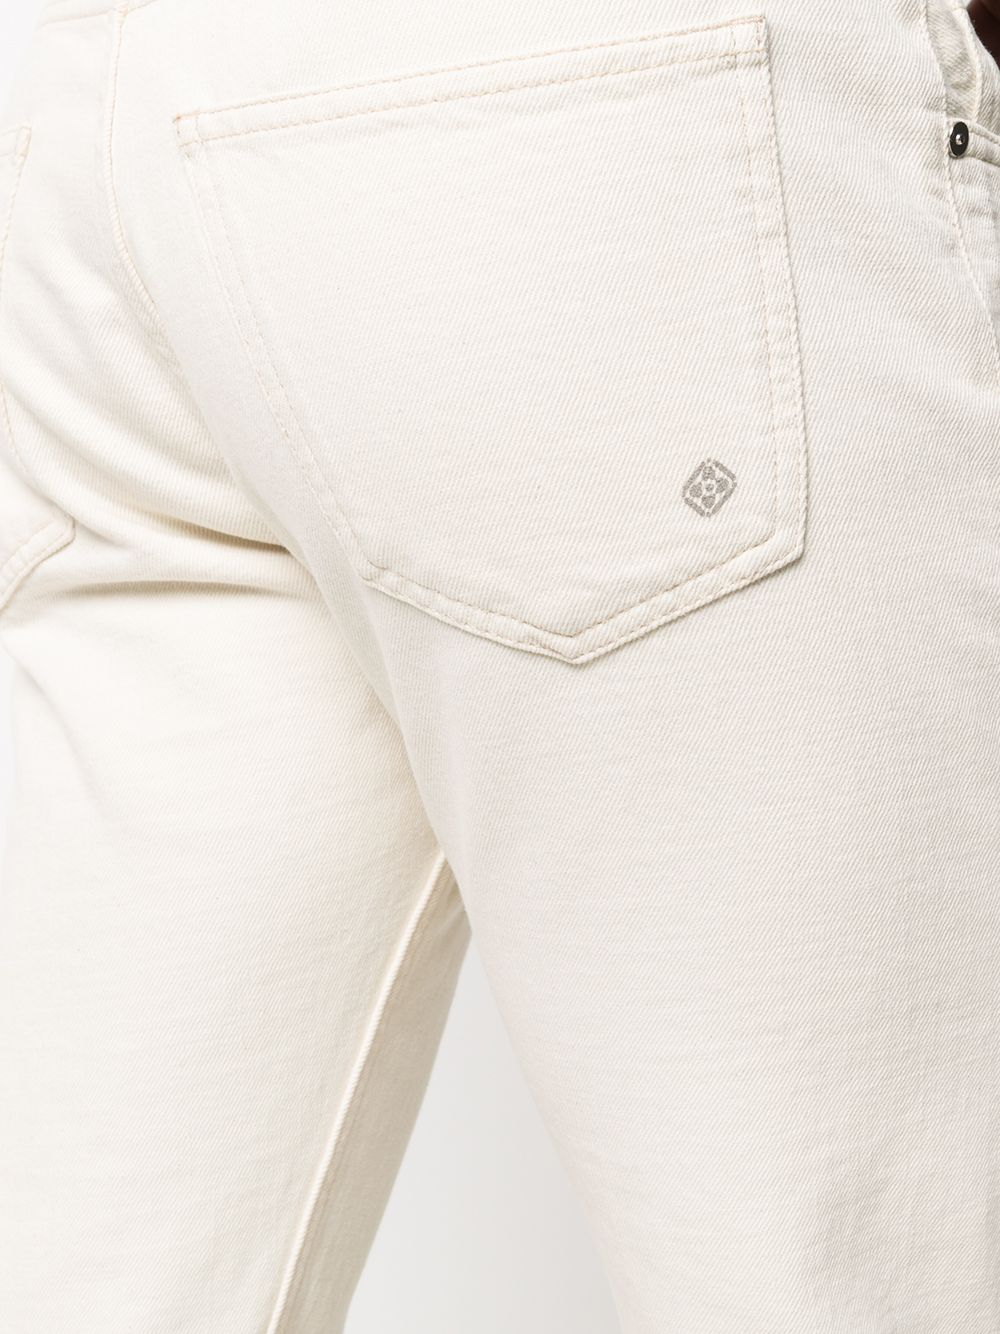 Jeans a gamba dritta in cotone bianco sporco ELEVENTY | Jeans | C75PANC06-TET0C01700